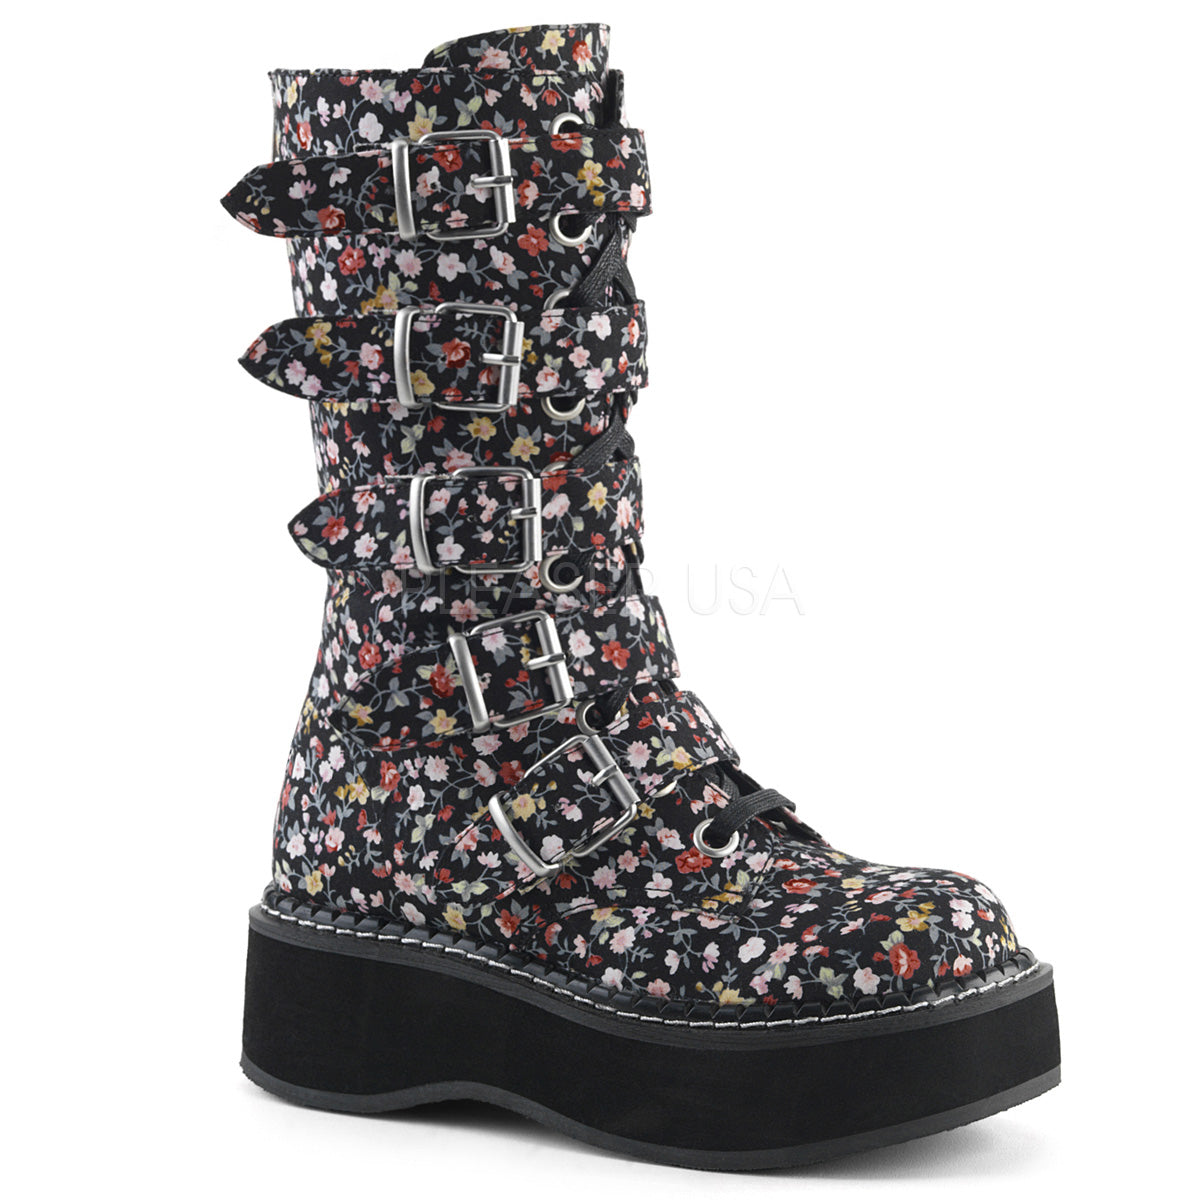 "Demonia EMILY-340 Floral Fabric 2"" (51mm) Platform Lace-Up Front Mid-Calf Boot Featuring Buckle Straps, Back Metal Zip Closure"